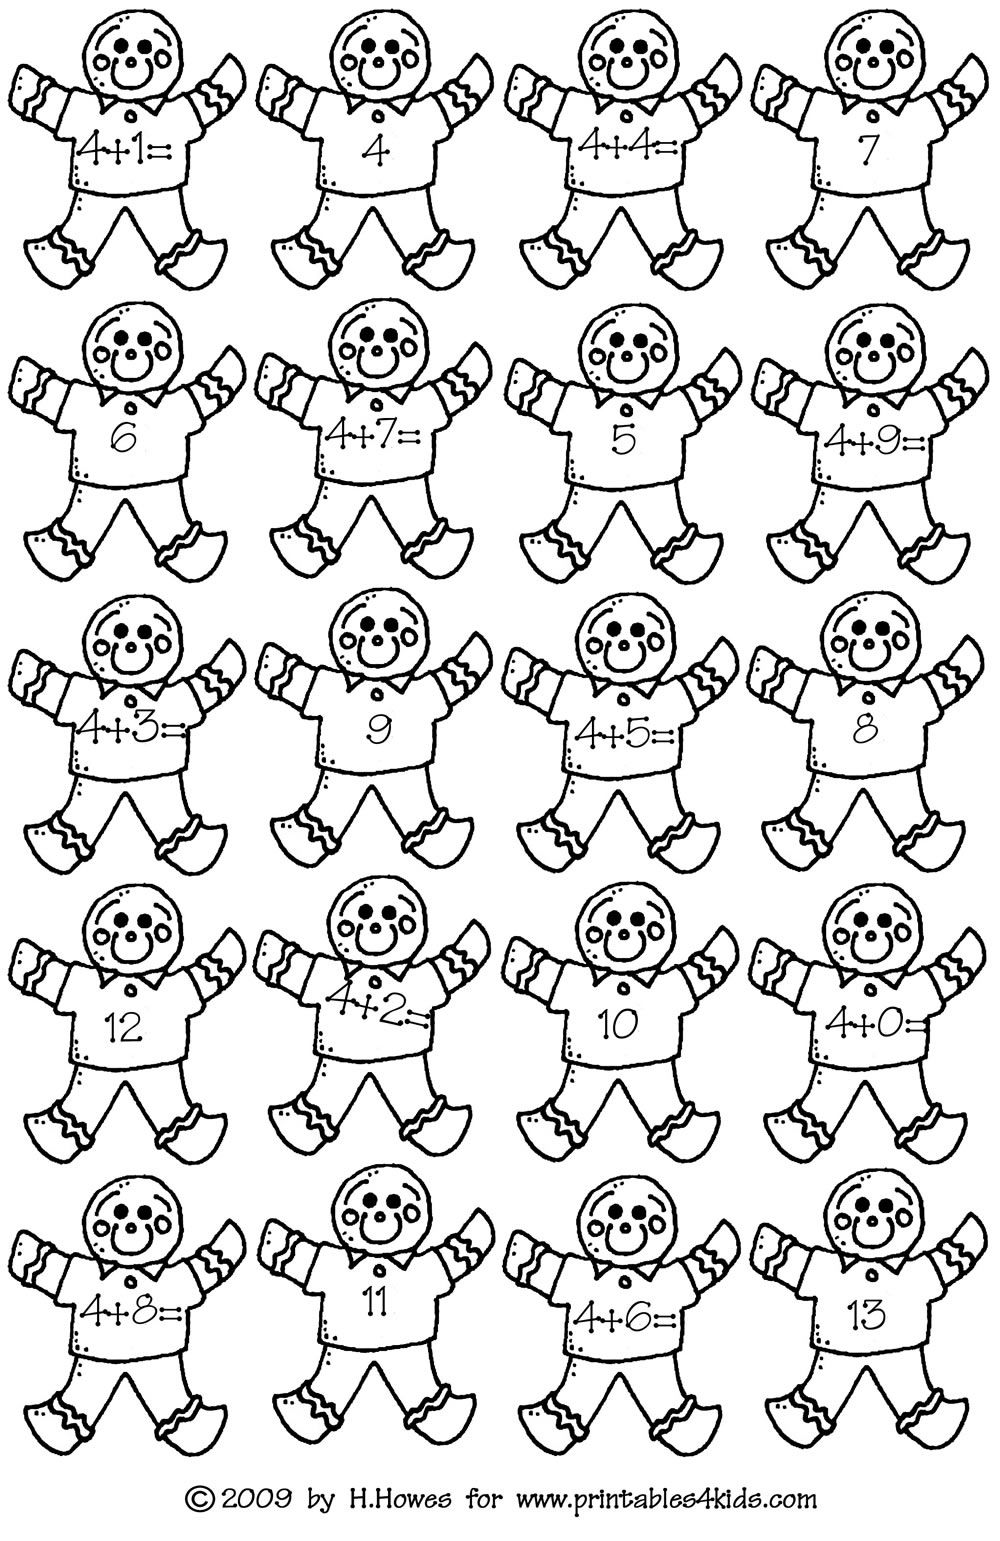 gingerbread math addition facts 4s printables for kids free word search puzzles coloring - Coloring Pages Addition Facts